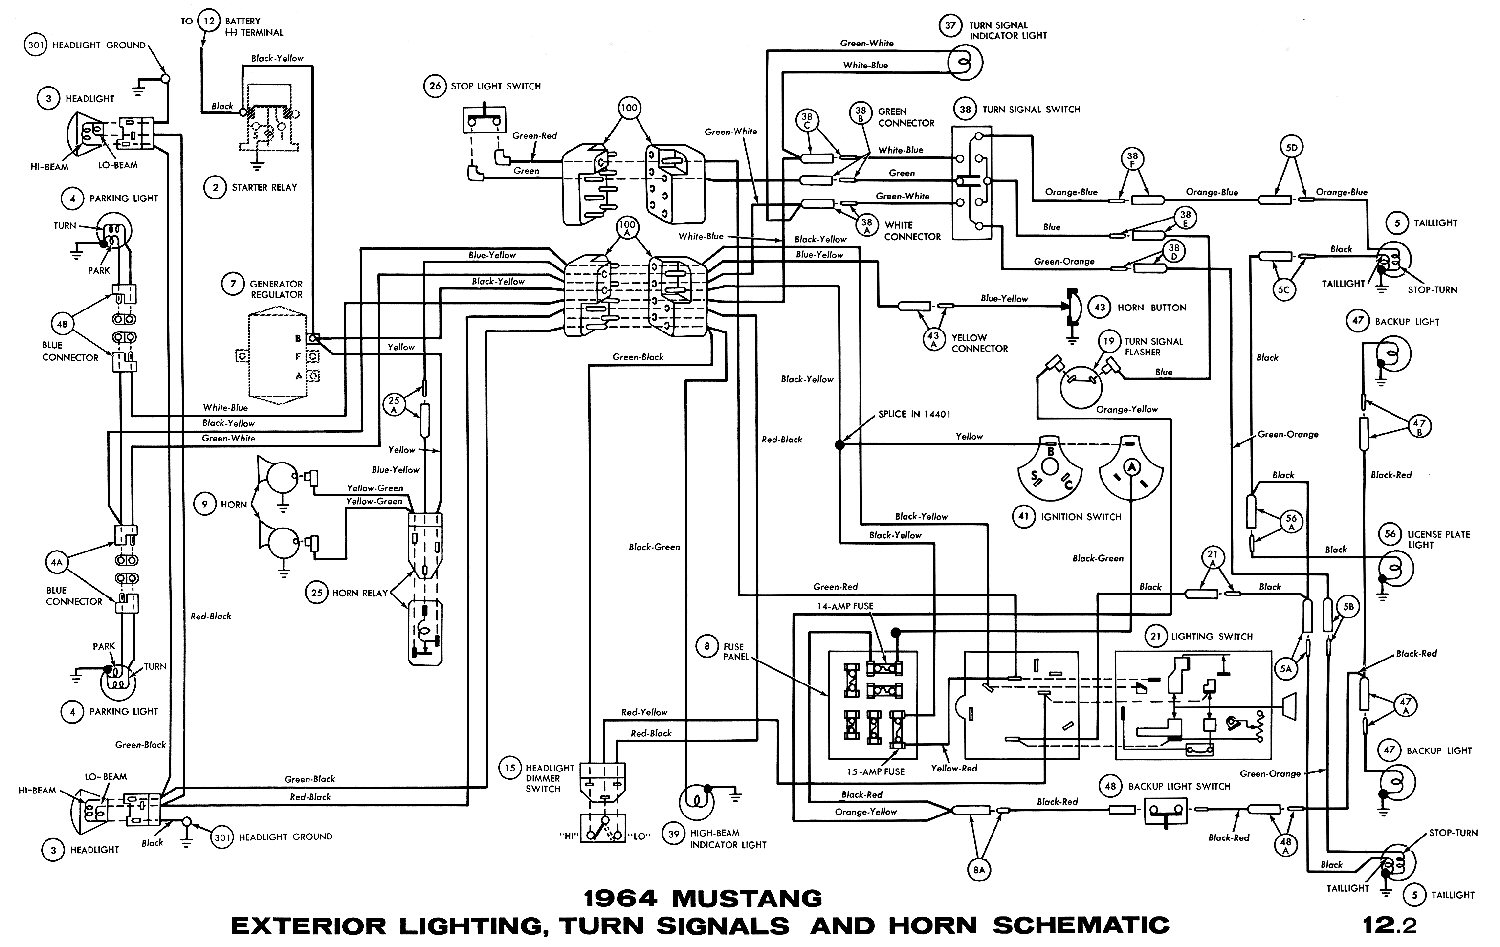 61b9a6 cadillac ignition switch wiring diagram free download | wiring  resources  wiring resources